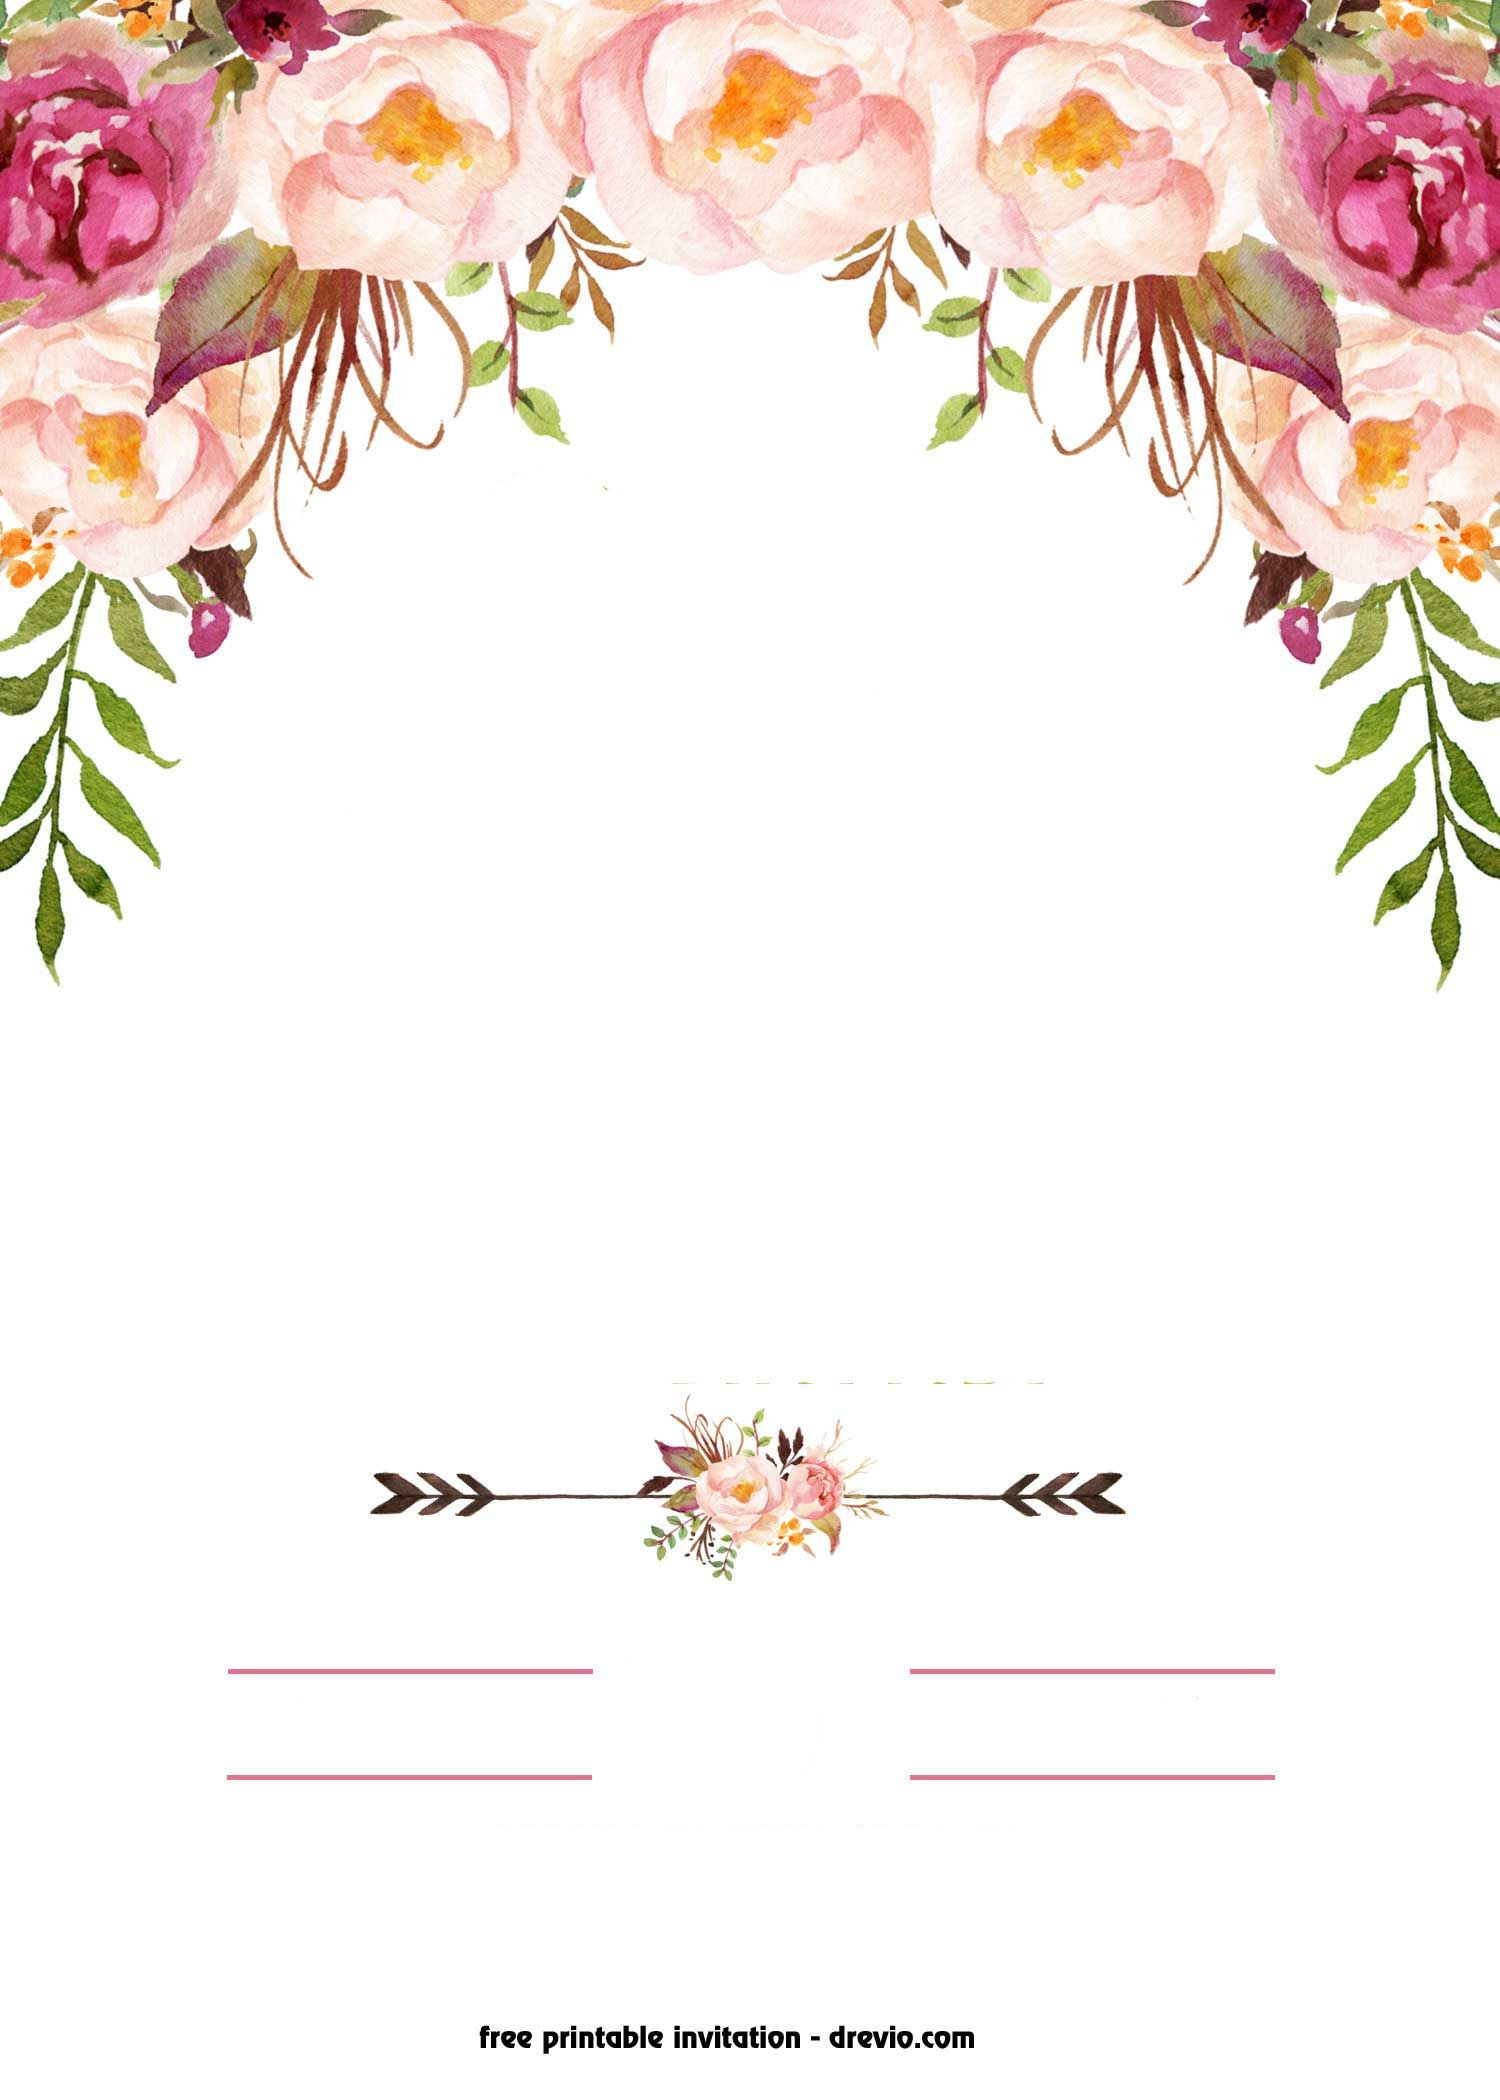 Free wedding banner clipart floral vintage rose clipart black and white library FREE Printable Boho Chic Flower Baby Shower Invitation Template ... clipart black and white library